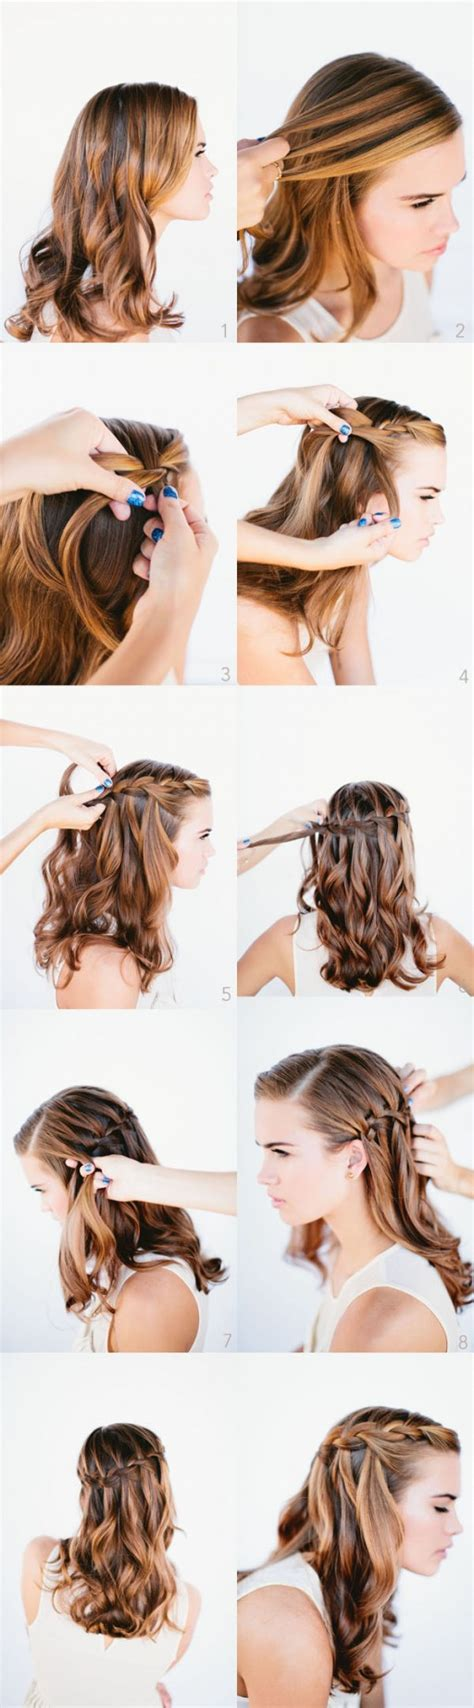 how to do waterfall braid wedding hairstyle long hairs